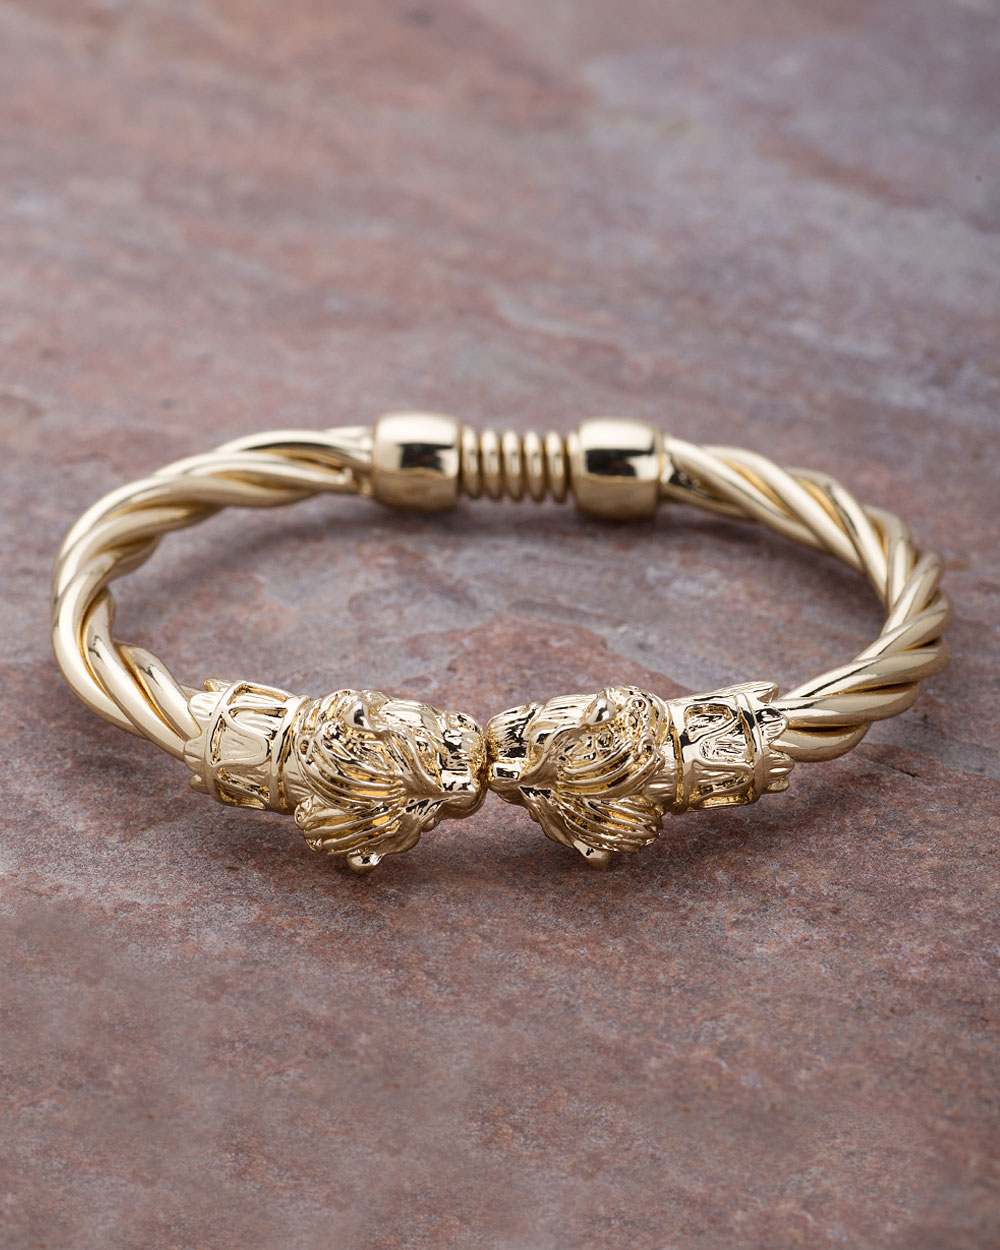 Buy Men\'s Stainless Steel Lion Head Twisted Bracelet From Dare by ...